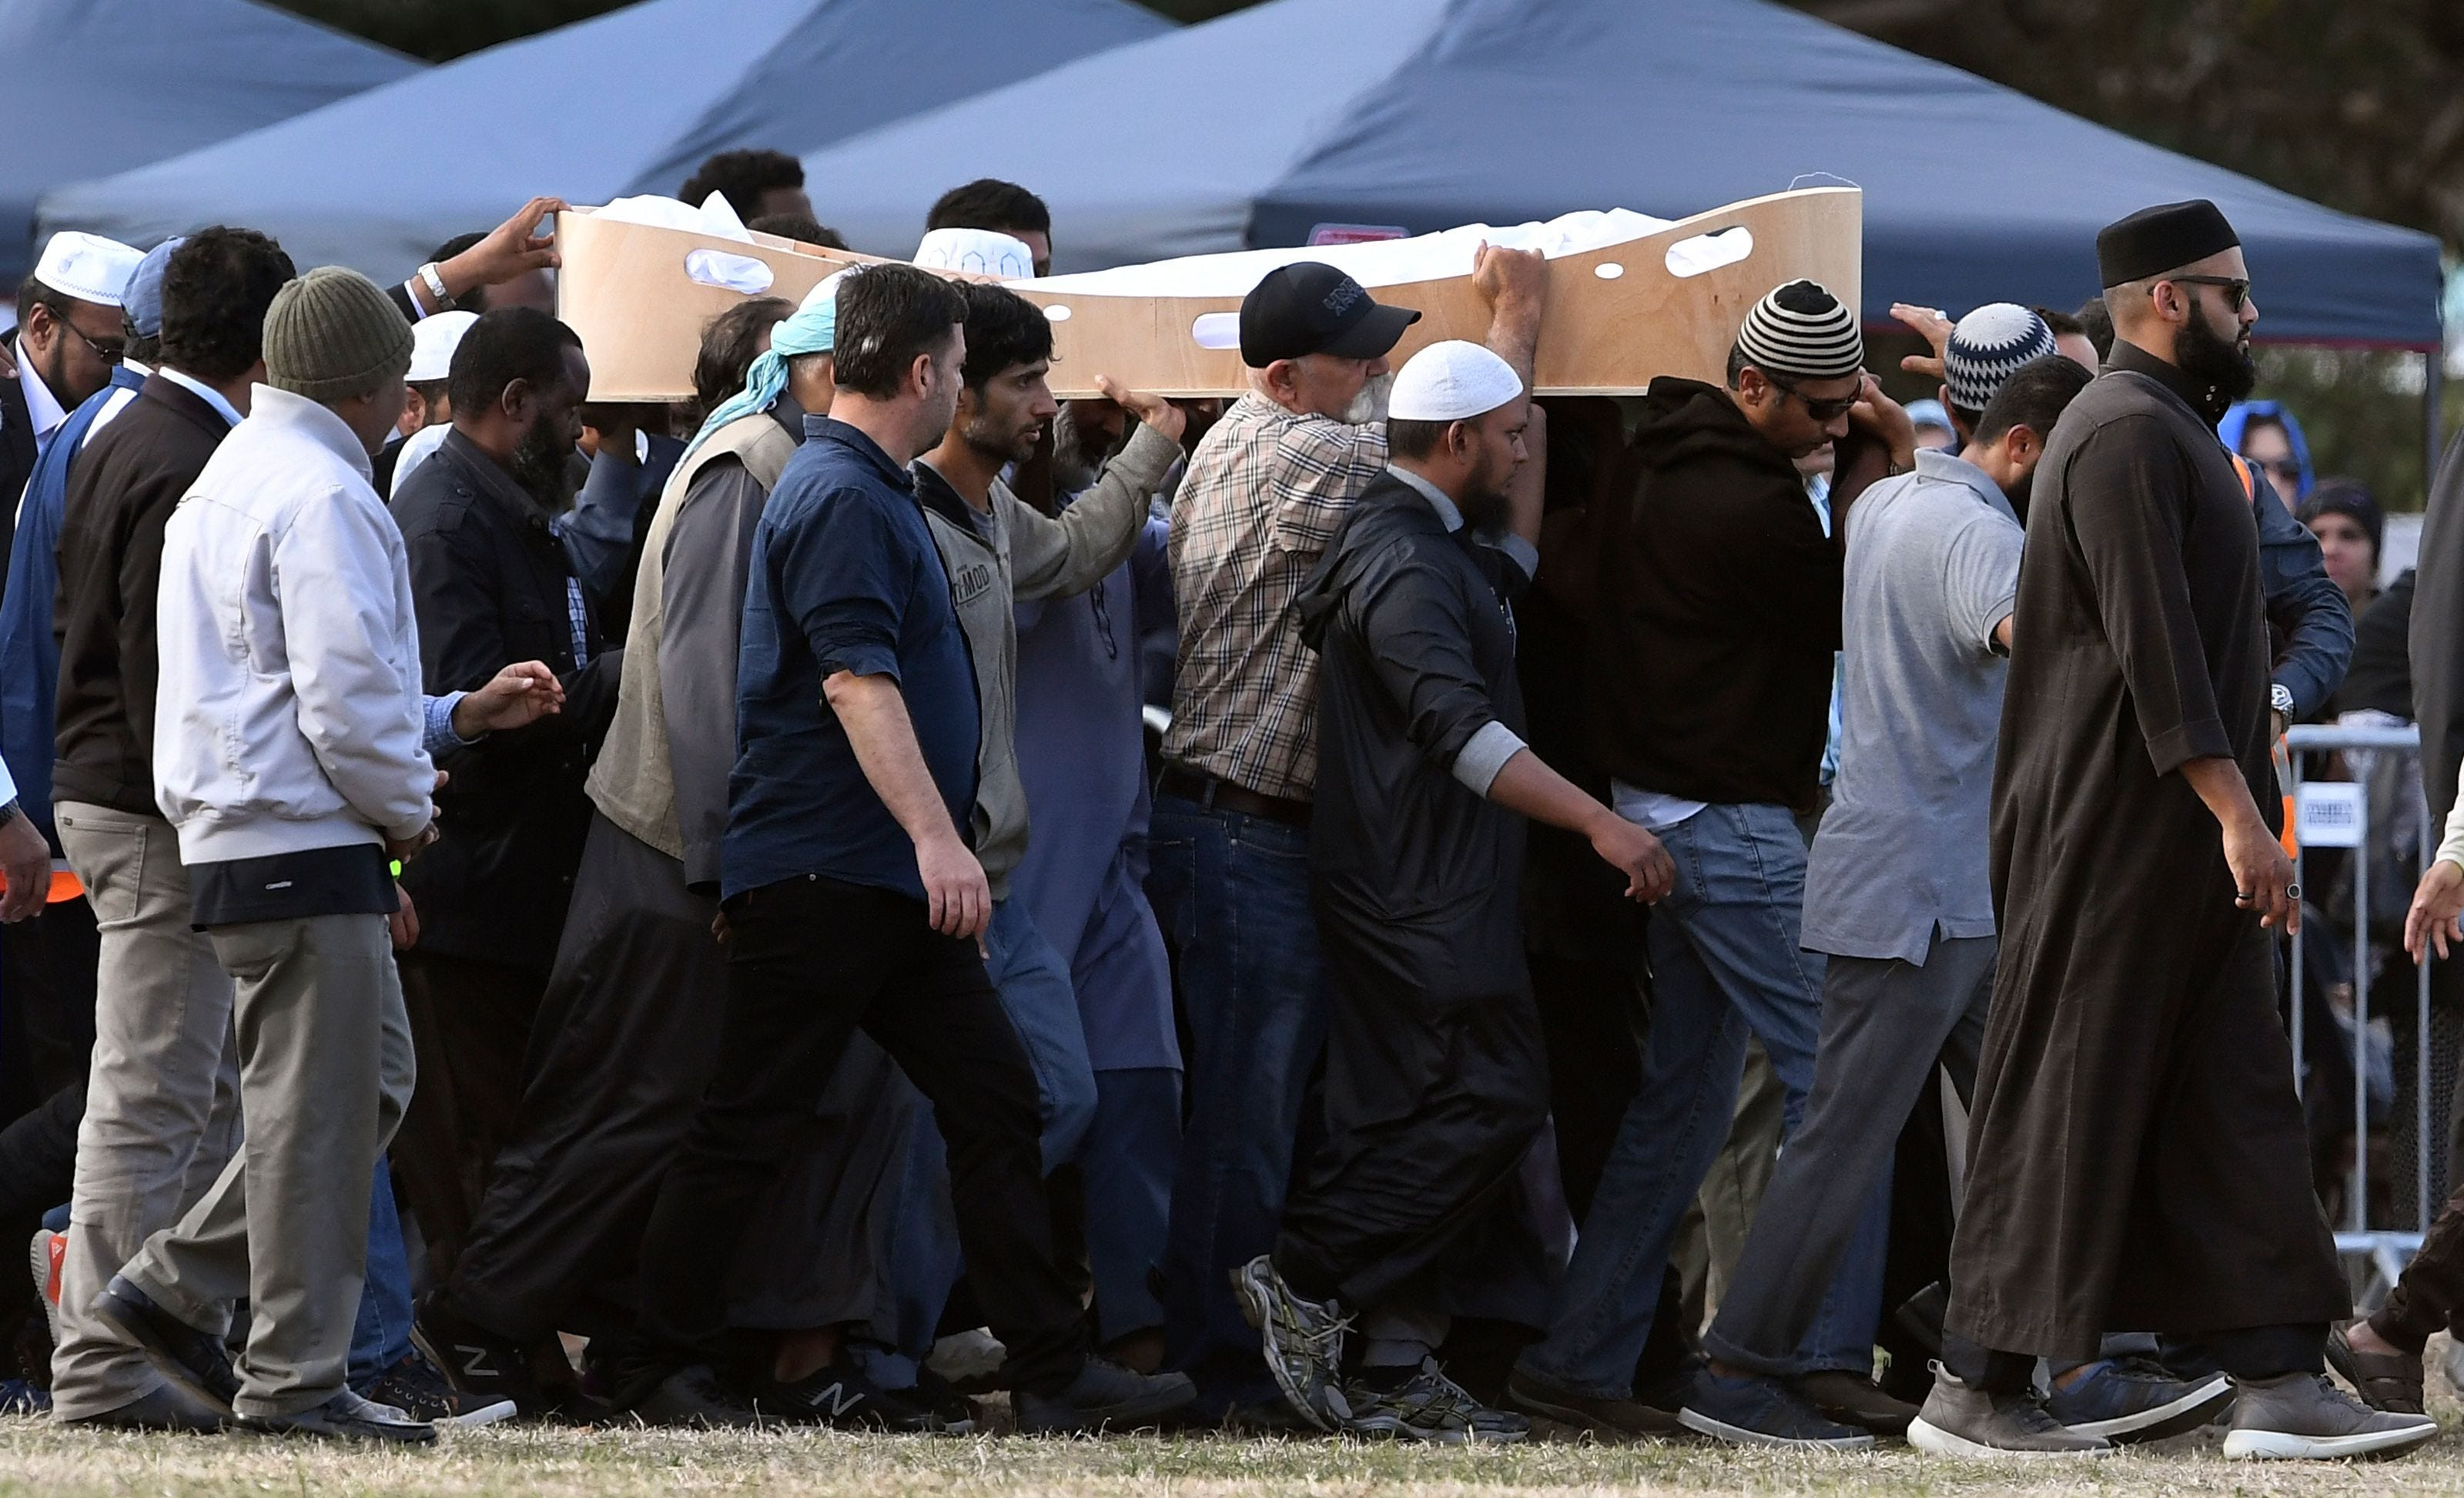 After killing dozens, New Zealand mosque attacks suspect was headed to carry out third shooting, police say